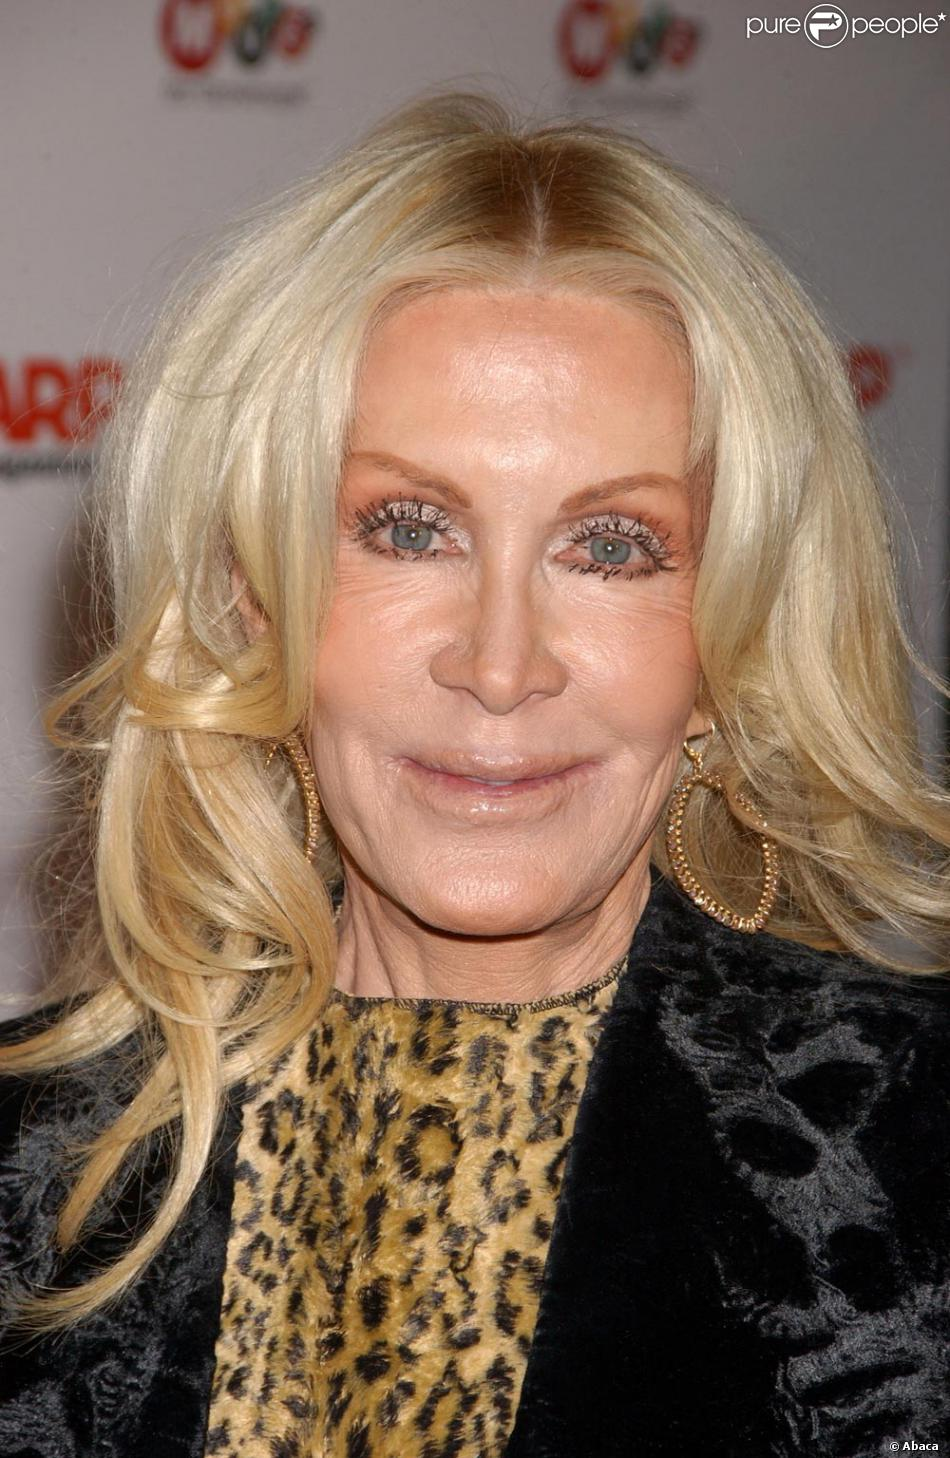 Joan Van Ark born June 16, 1943 (age 75) Joan Van Ark born June 16, 1943 (age 75) new images